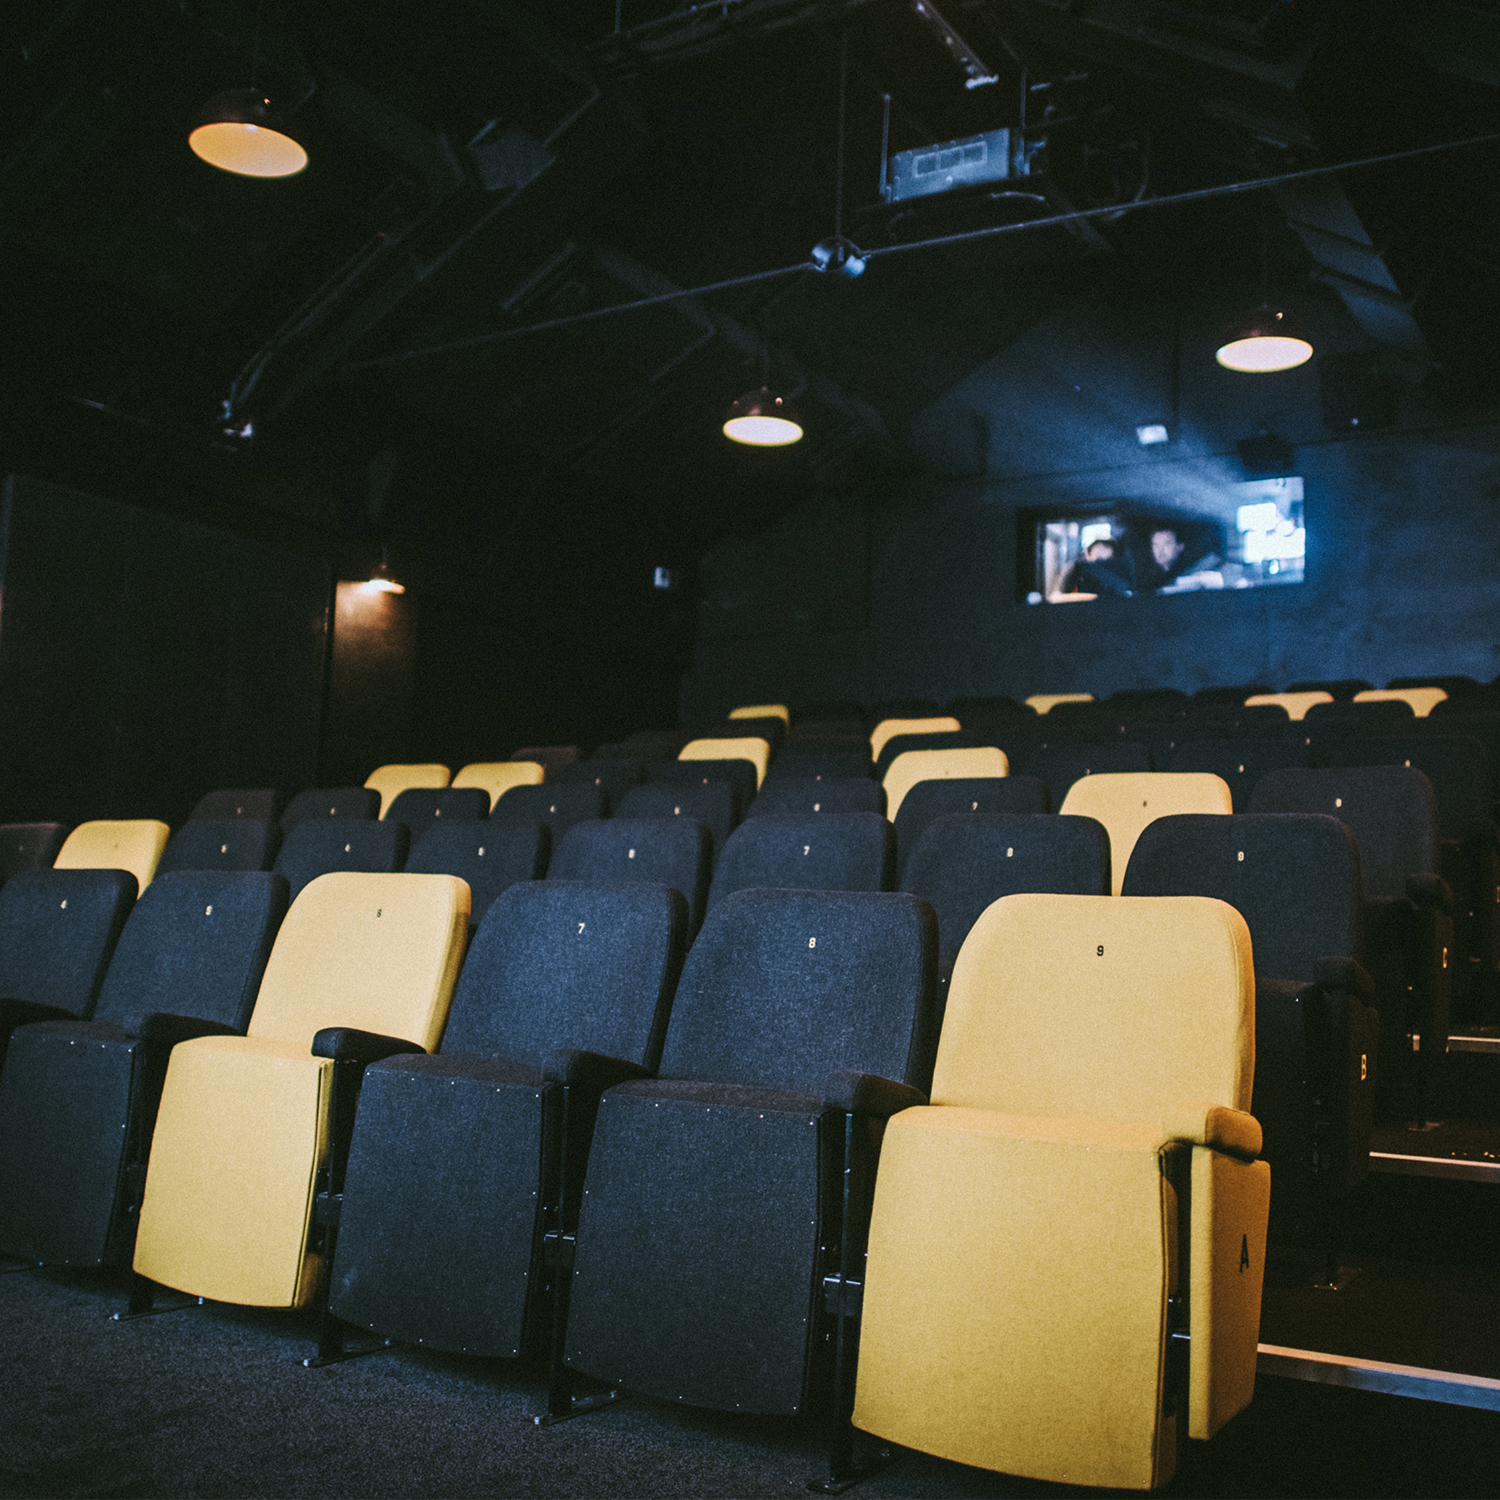 Rows of cinema seats.